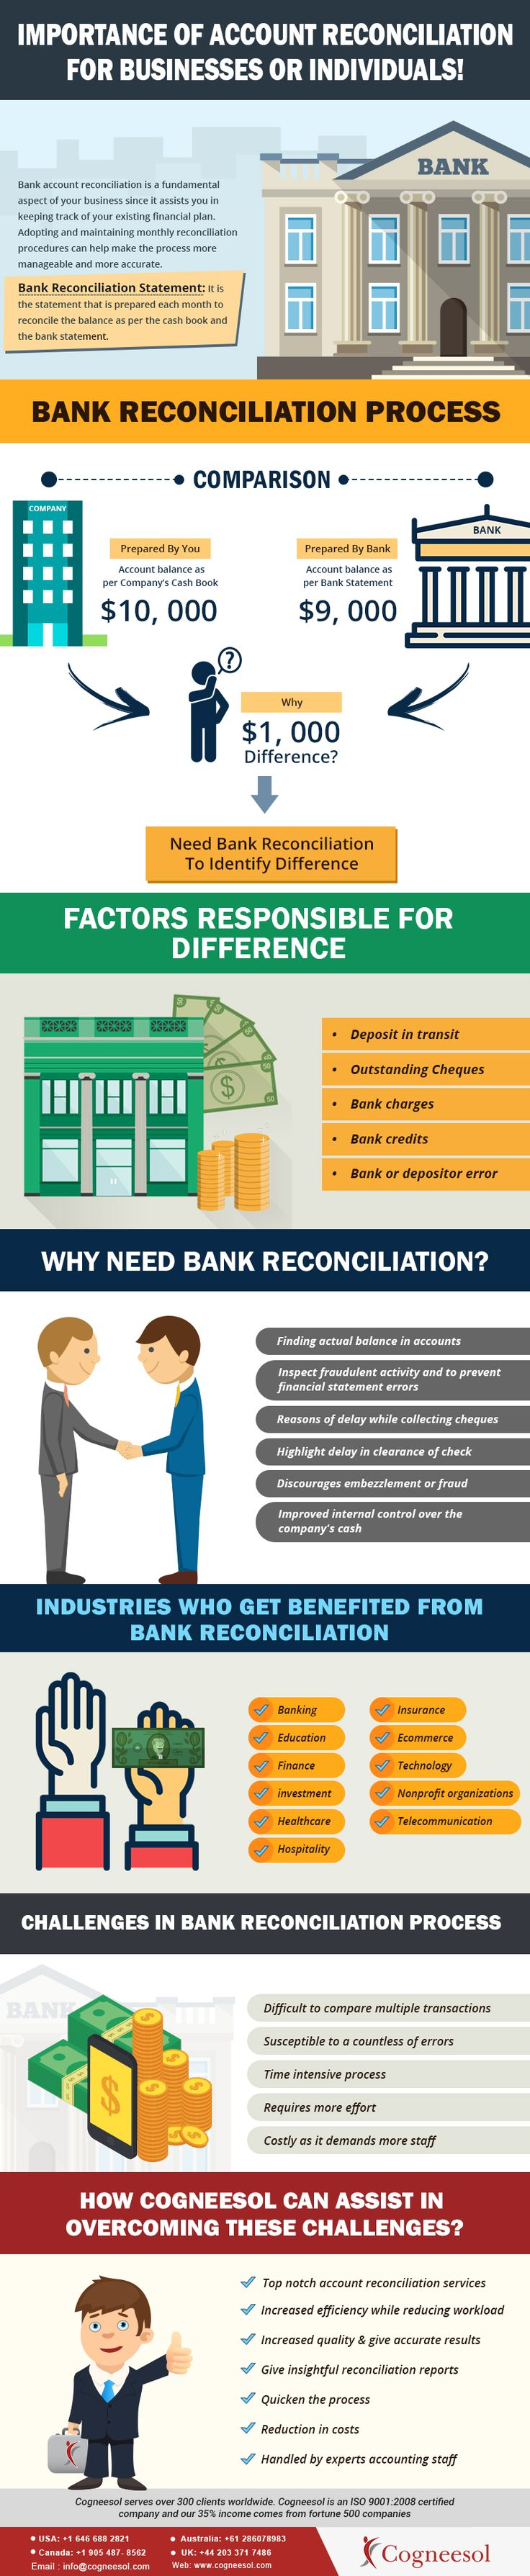 IMPORTANCE OF ACCOUNT RECONCILIATION FOR BUSINESSES OR INDIVIDUALS!